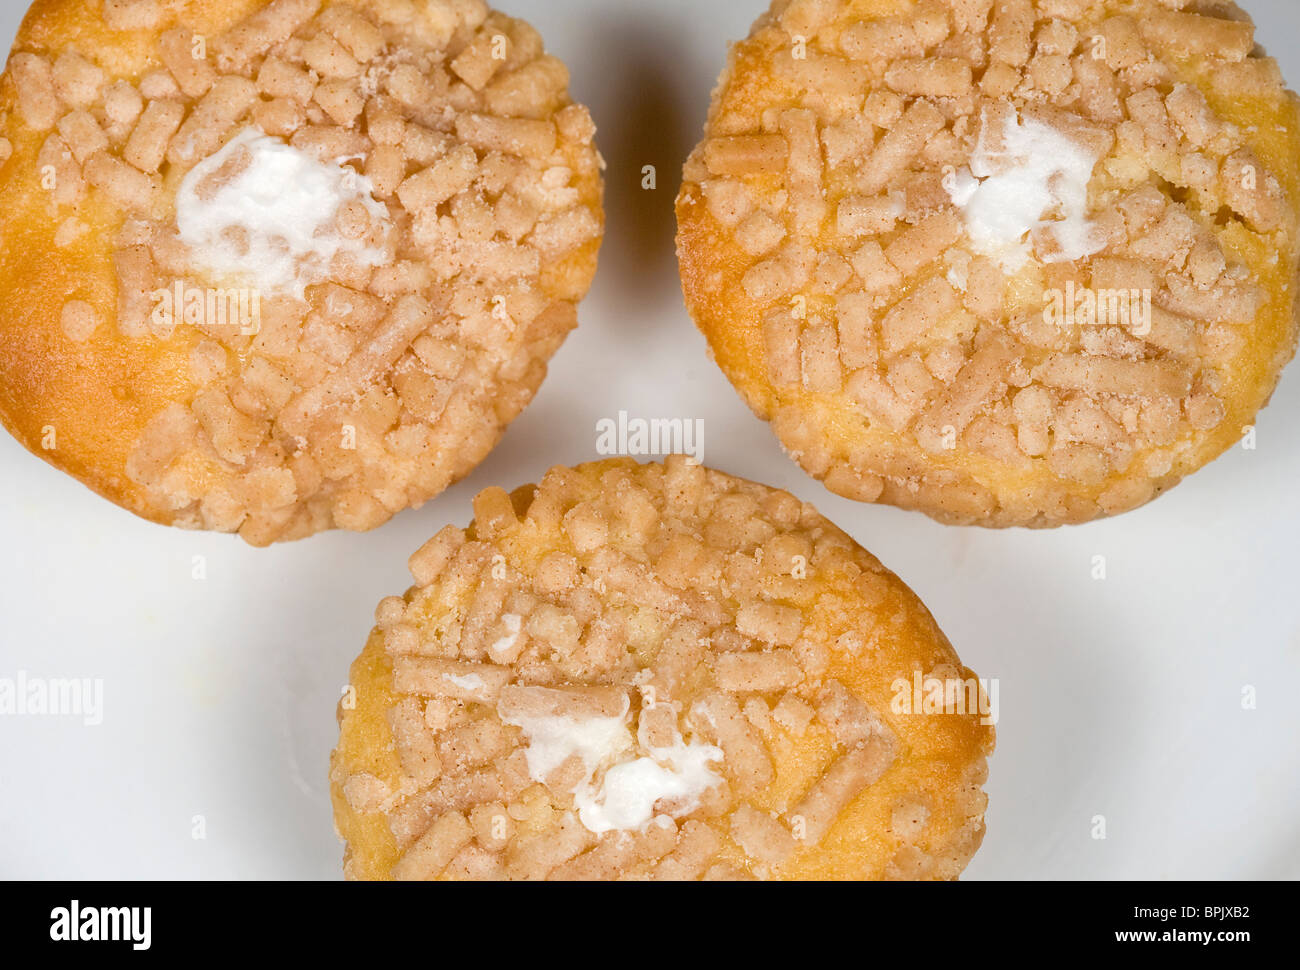 Tastykake cream filled Koffee Kake cupcakes. - Stock Image